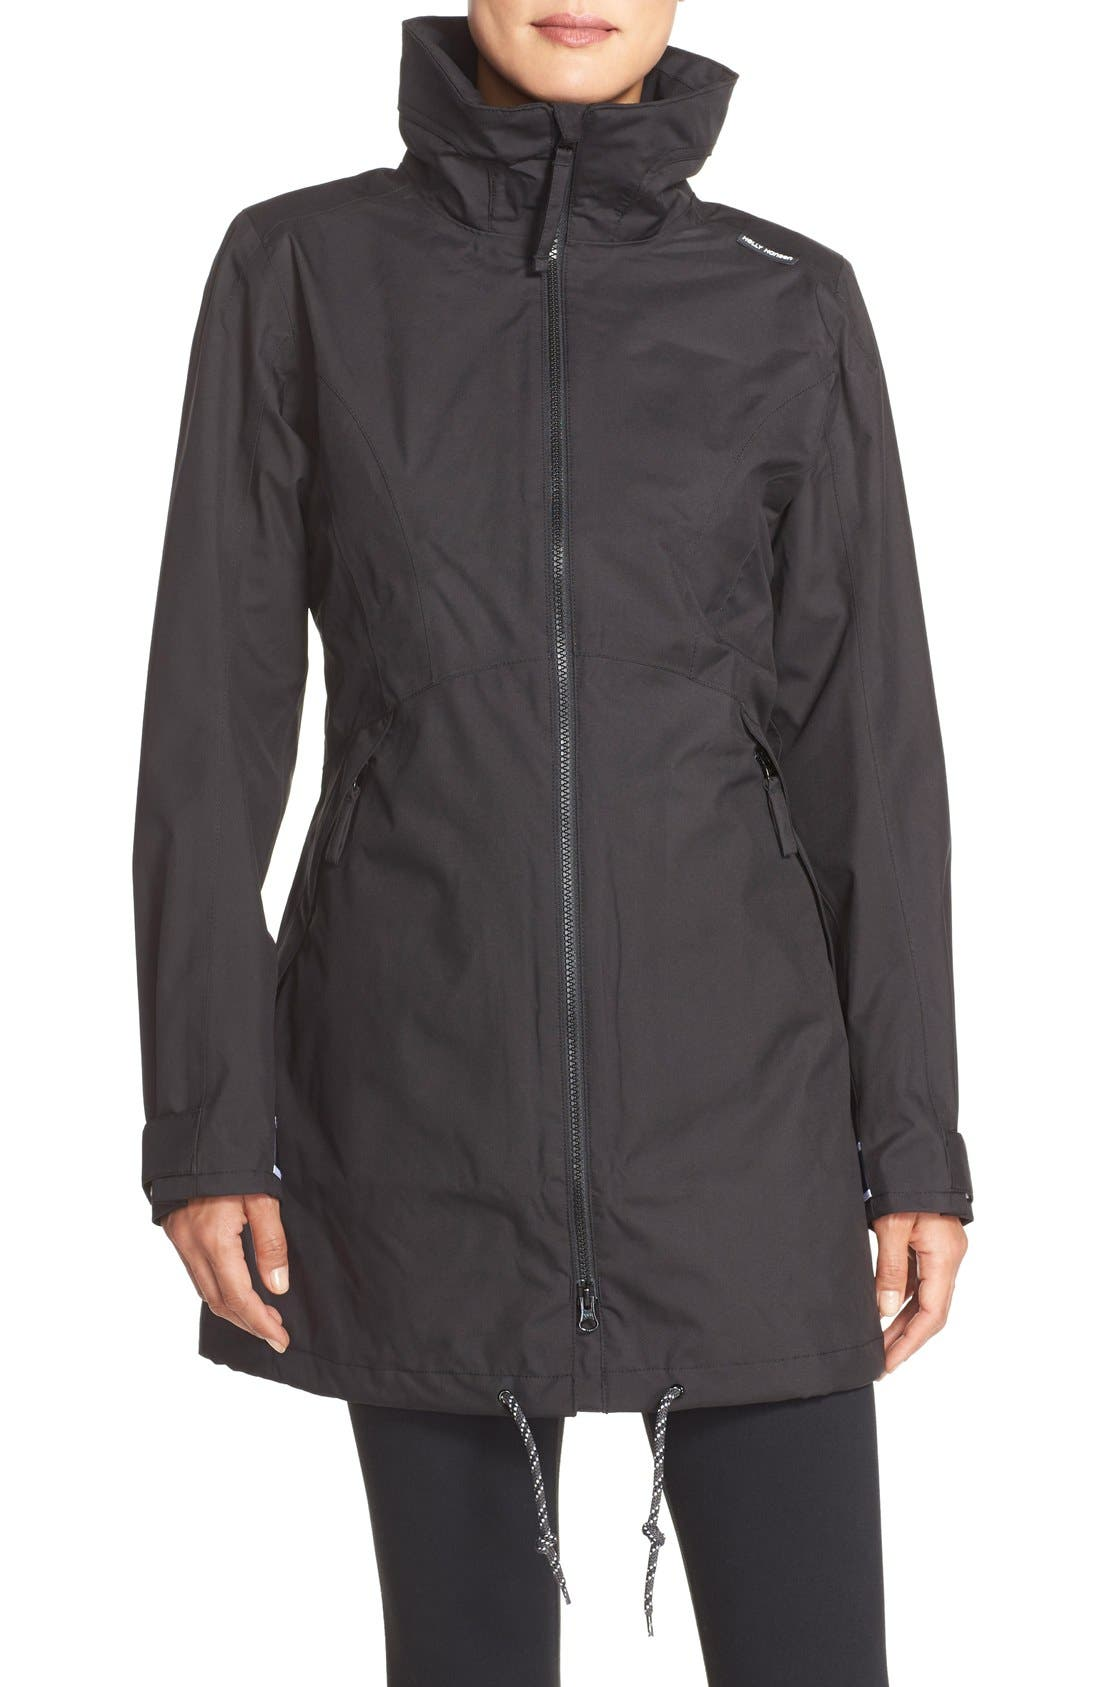 Alternate Image 1 Selected - Helly Hansen 'Laurel' Waterproof Coat